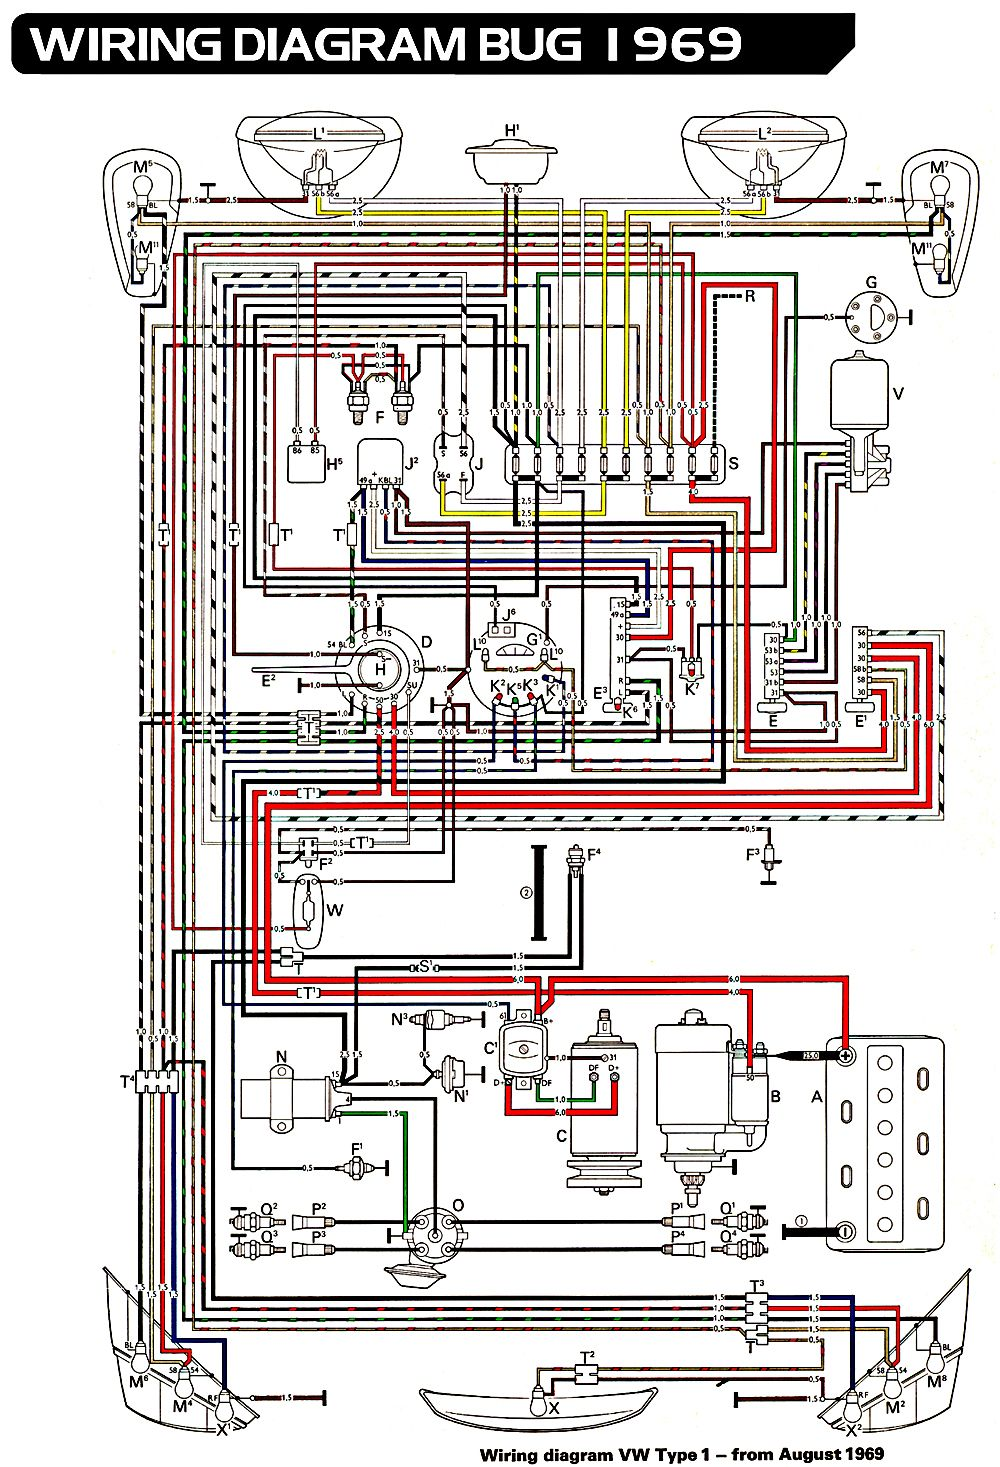 6d75c15875479254f26a32a8499d9044 volkswagen beetle wiring diagram 1966 vw beetle wiring 1973 vw super beetle wiring diagram at sewacar.co